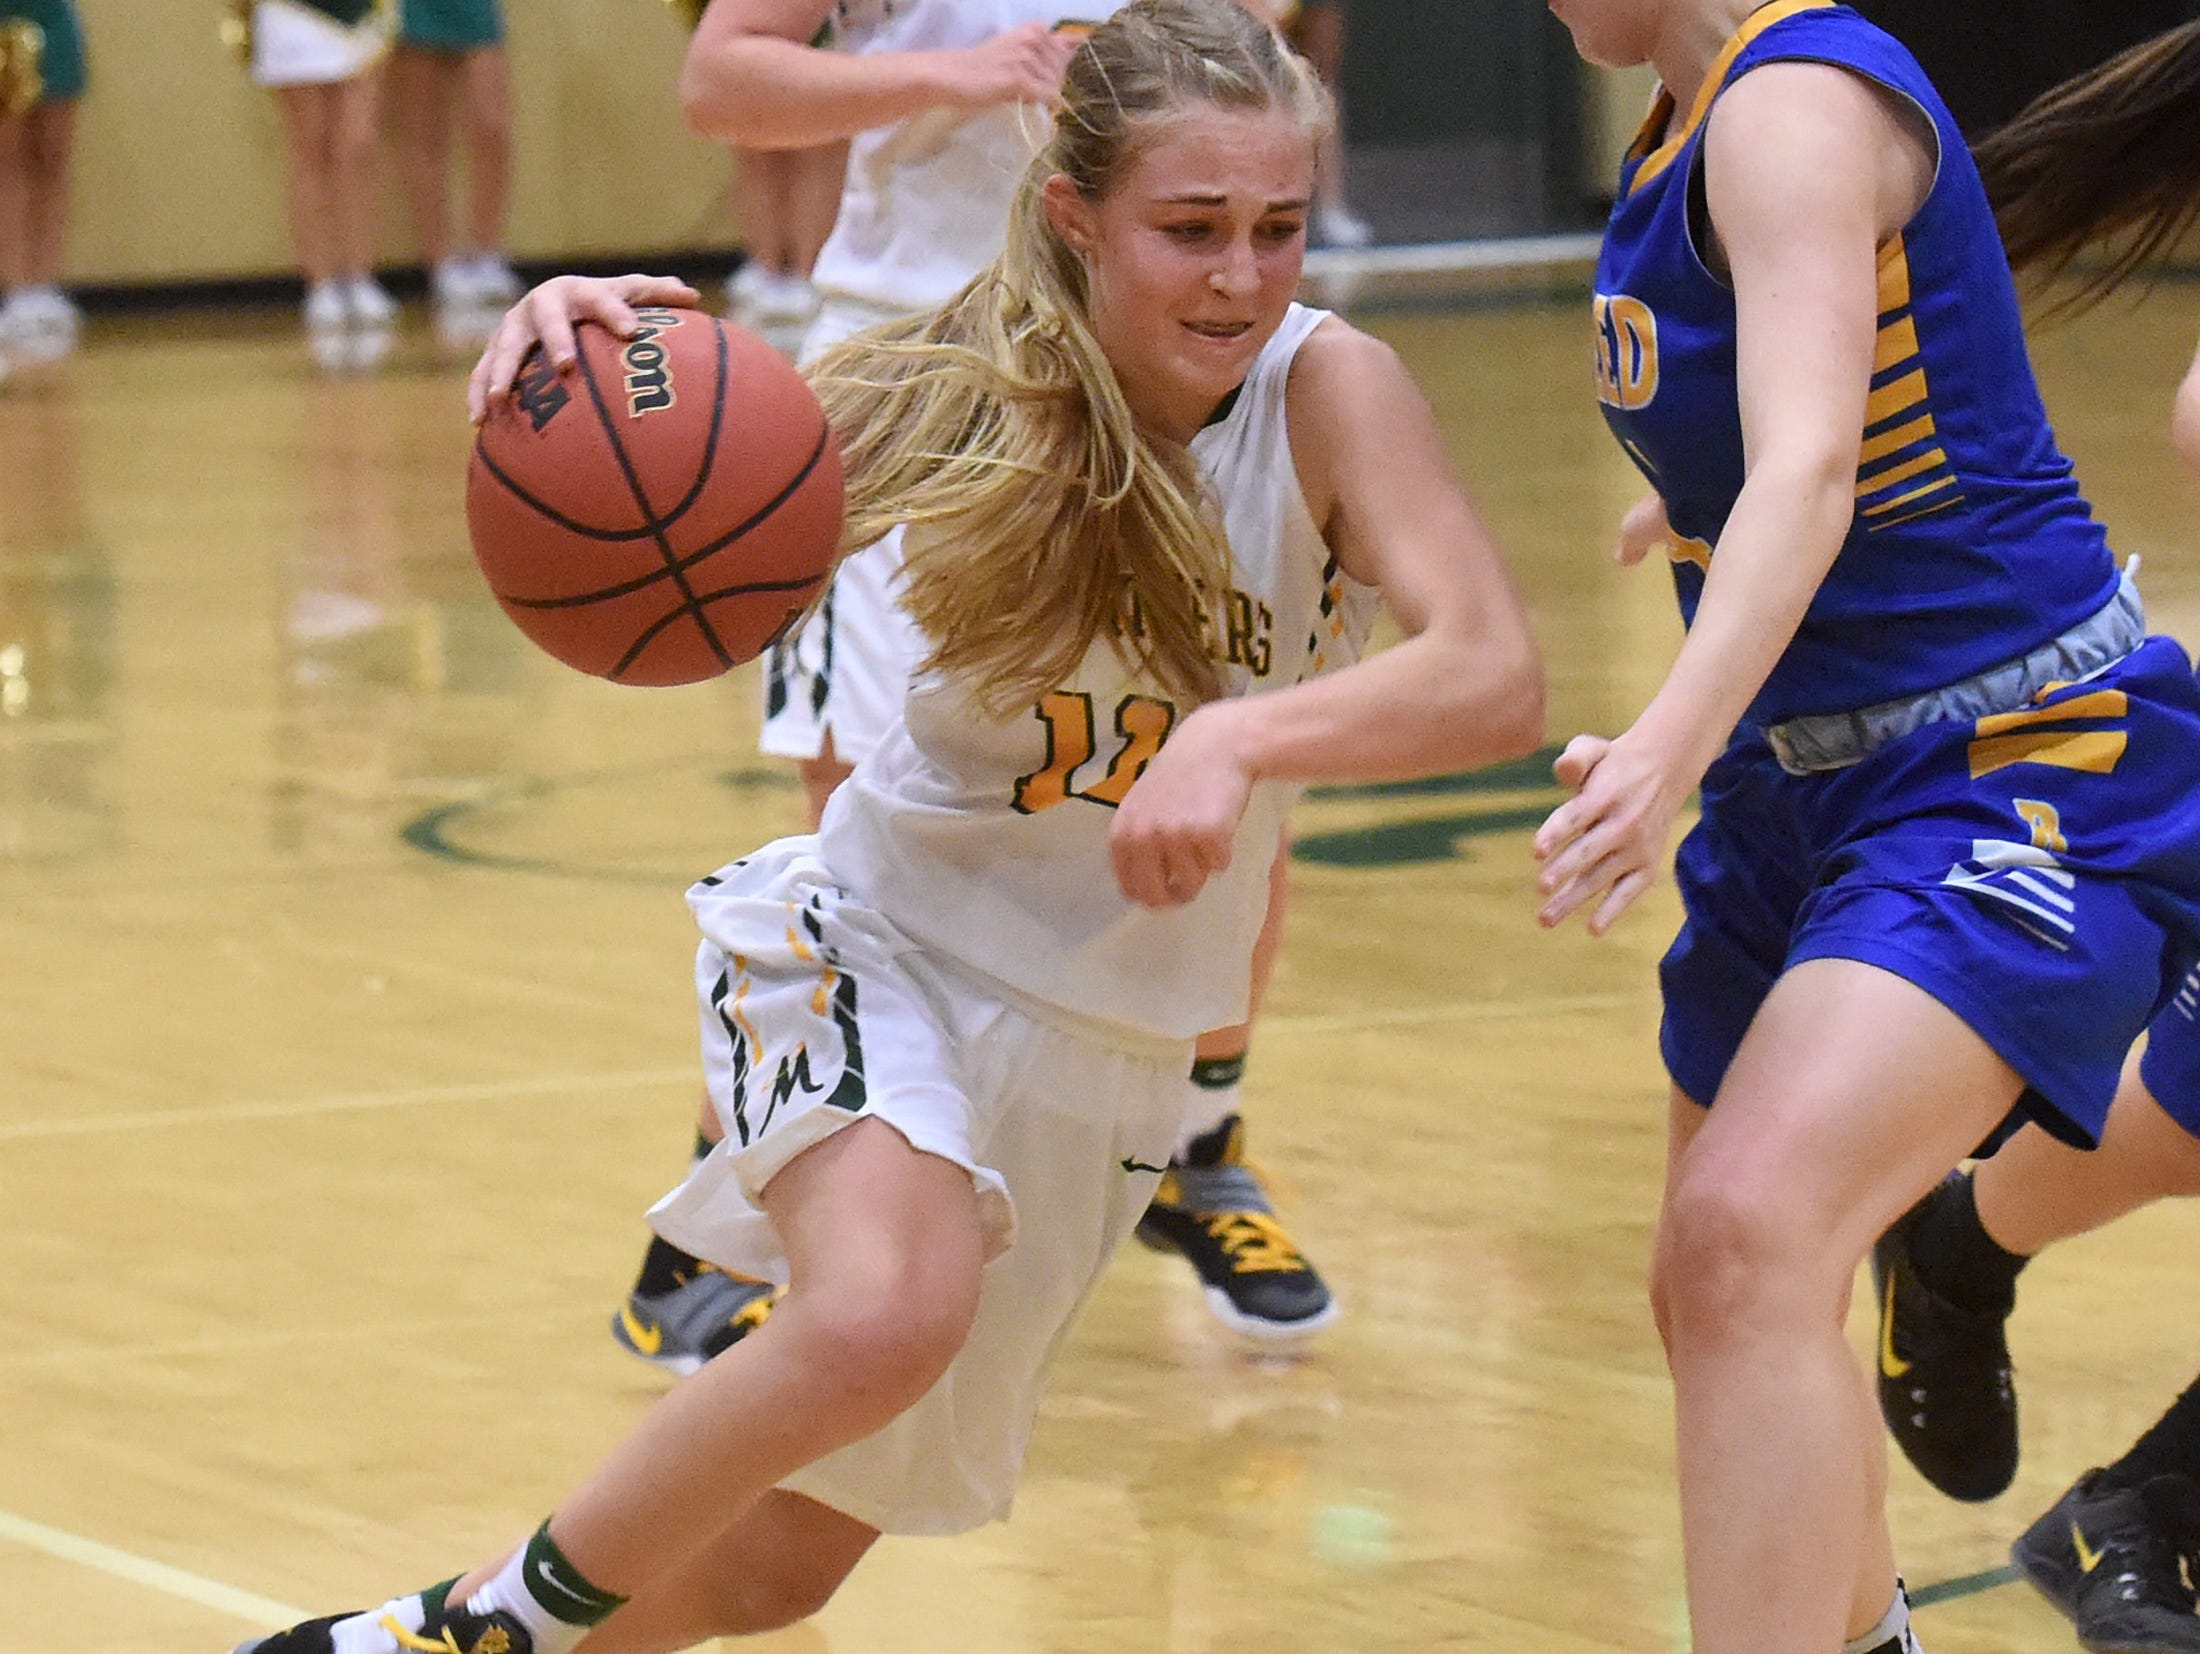 Bishop Manogue freshman Kenna Holt is on the All-USA Northern Nevada 4A basketball team.